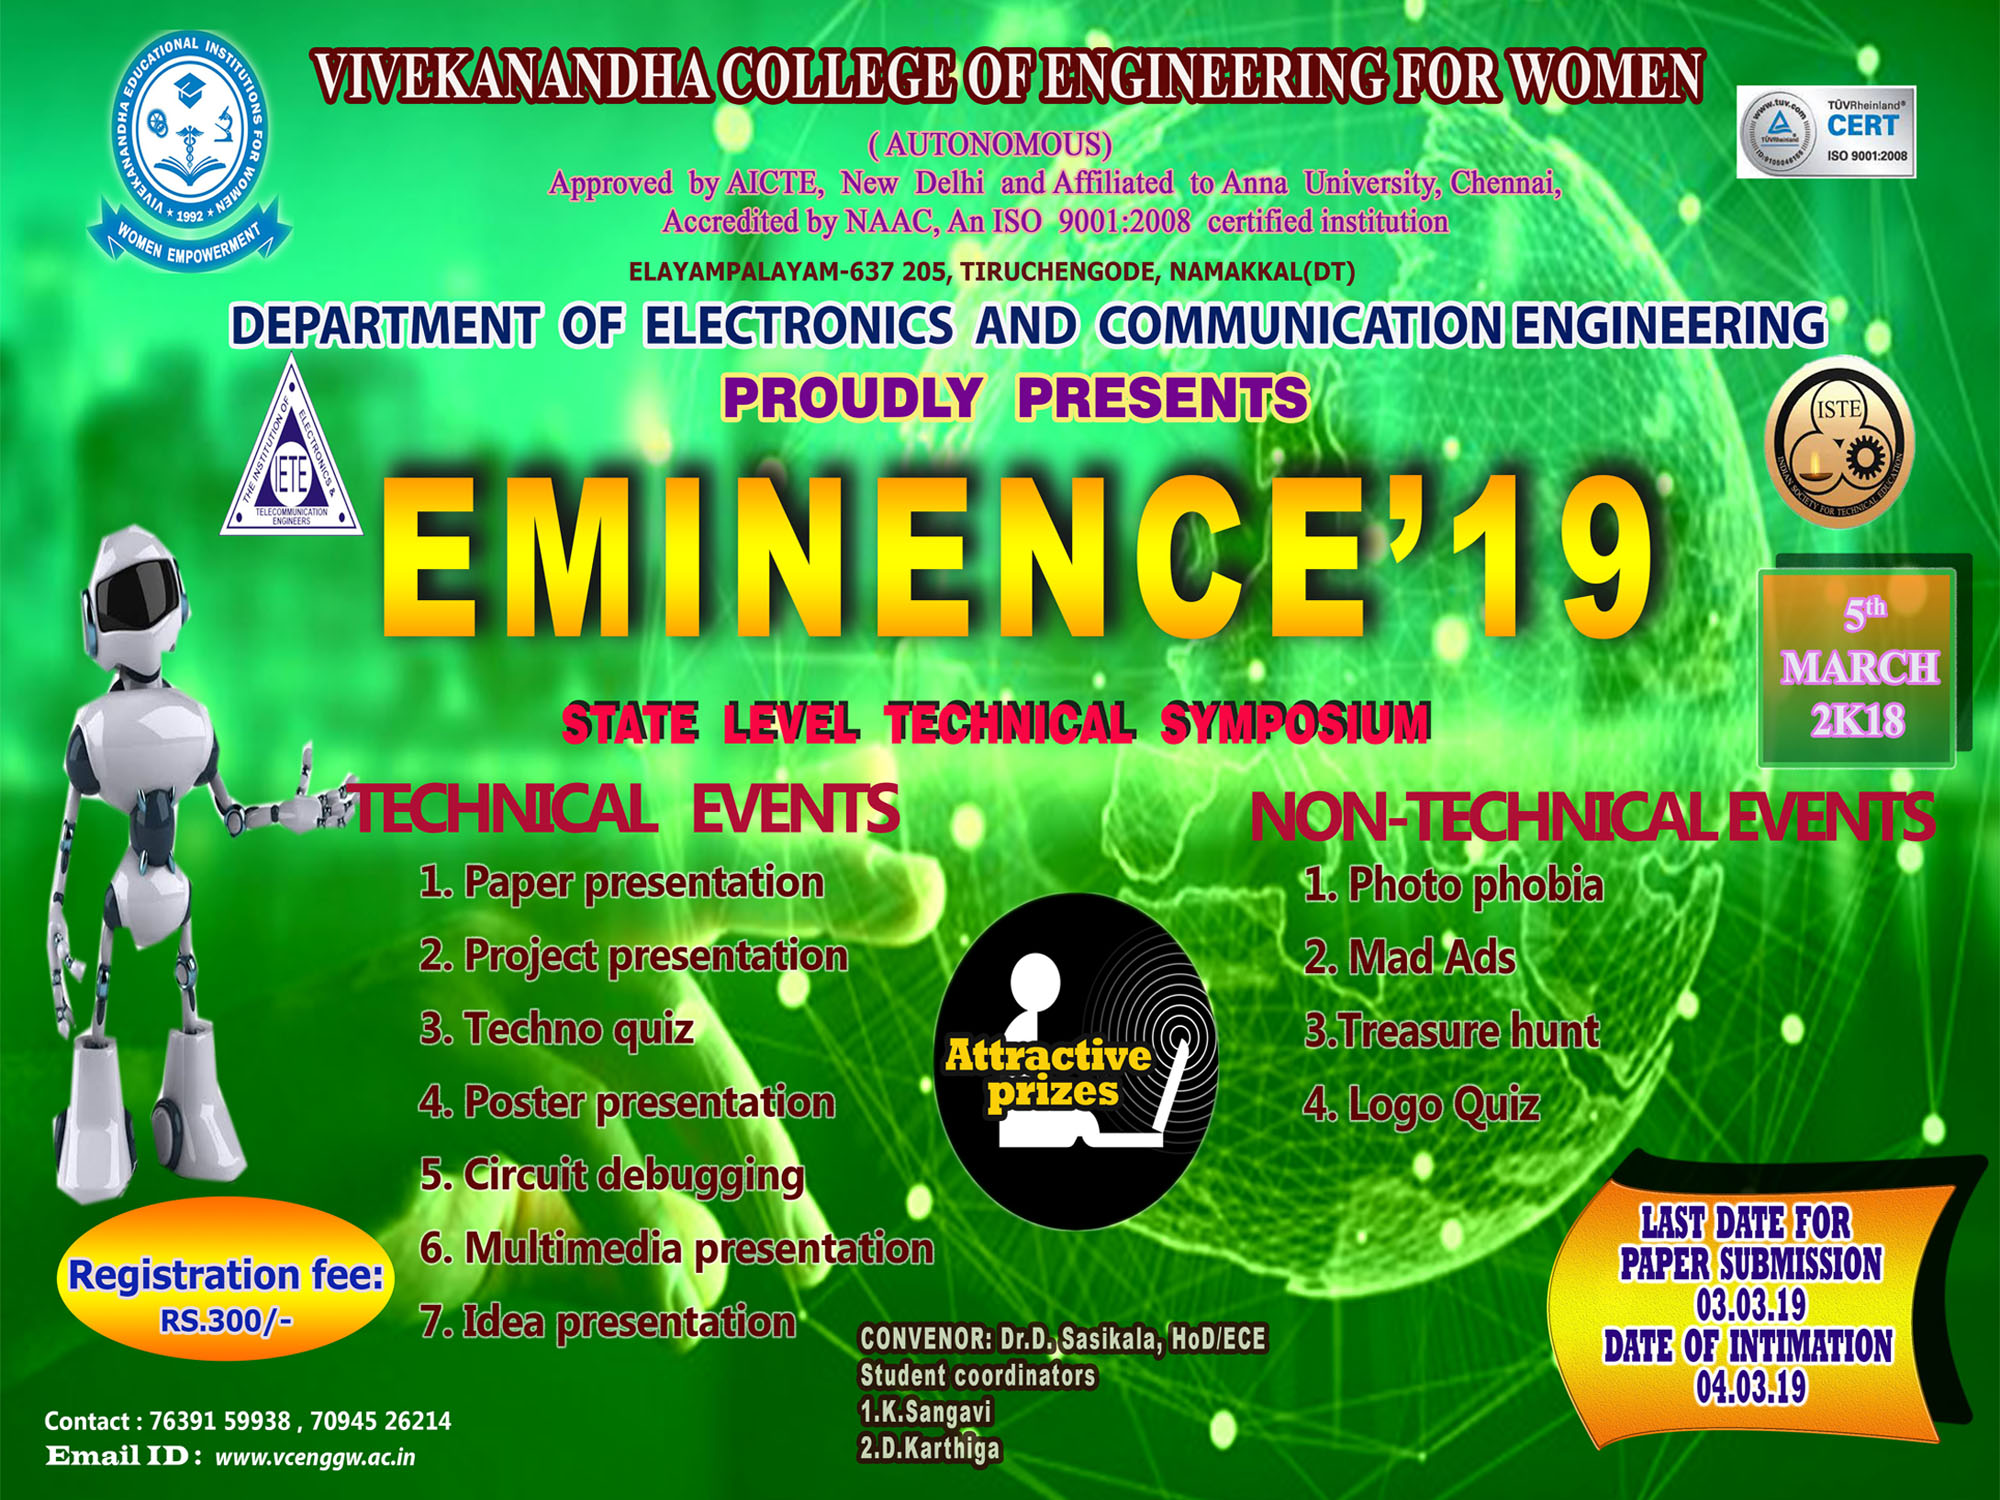 Vivekanadha College of Engineering for Women - Tiruchengode